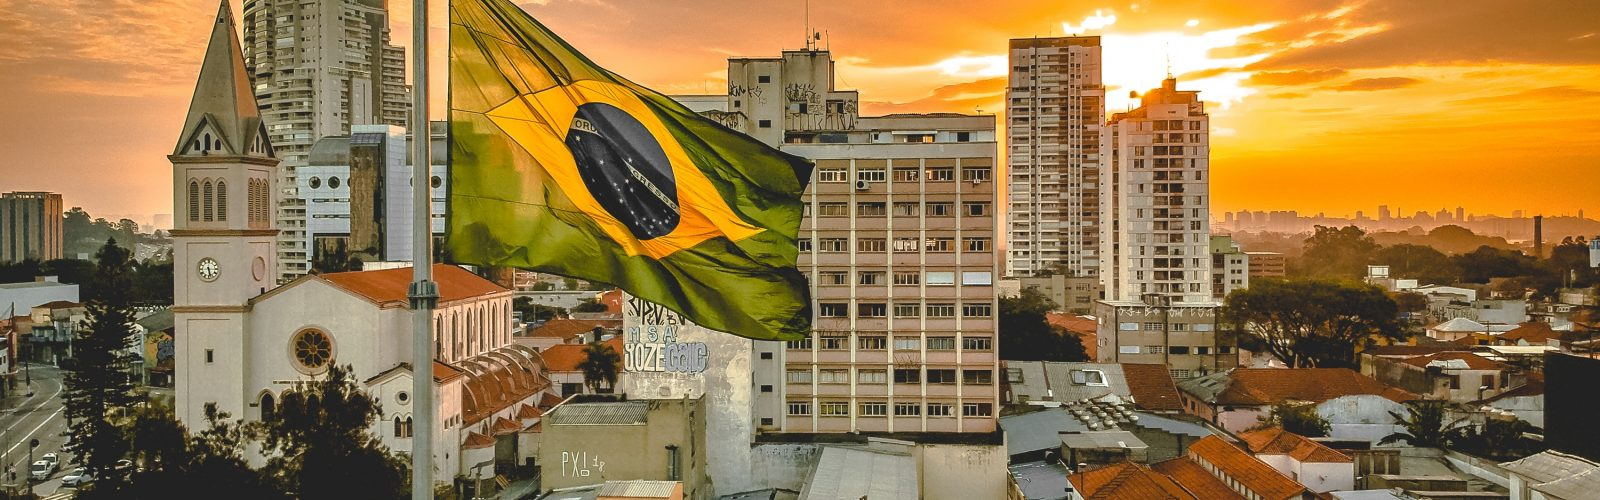 The sun behind buildings and the Brazilian flag flying in foreground